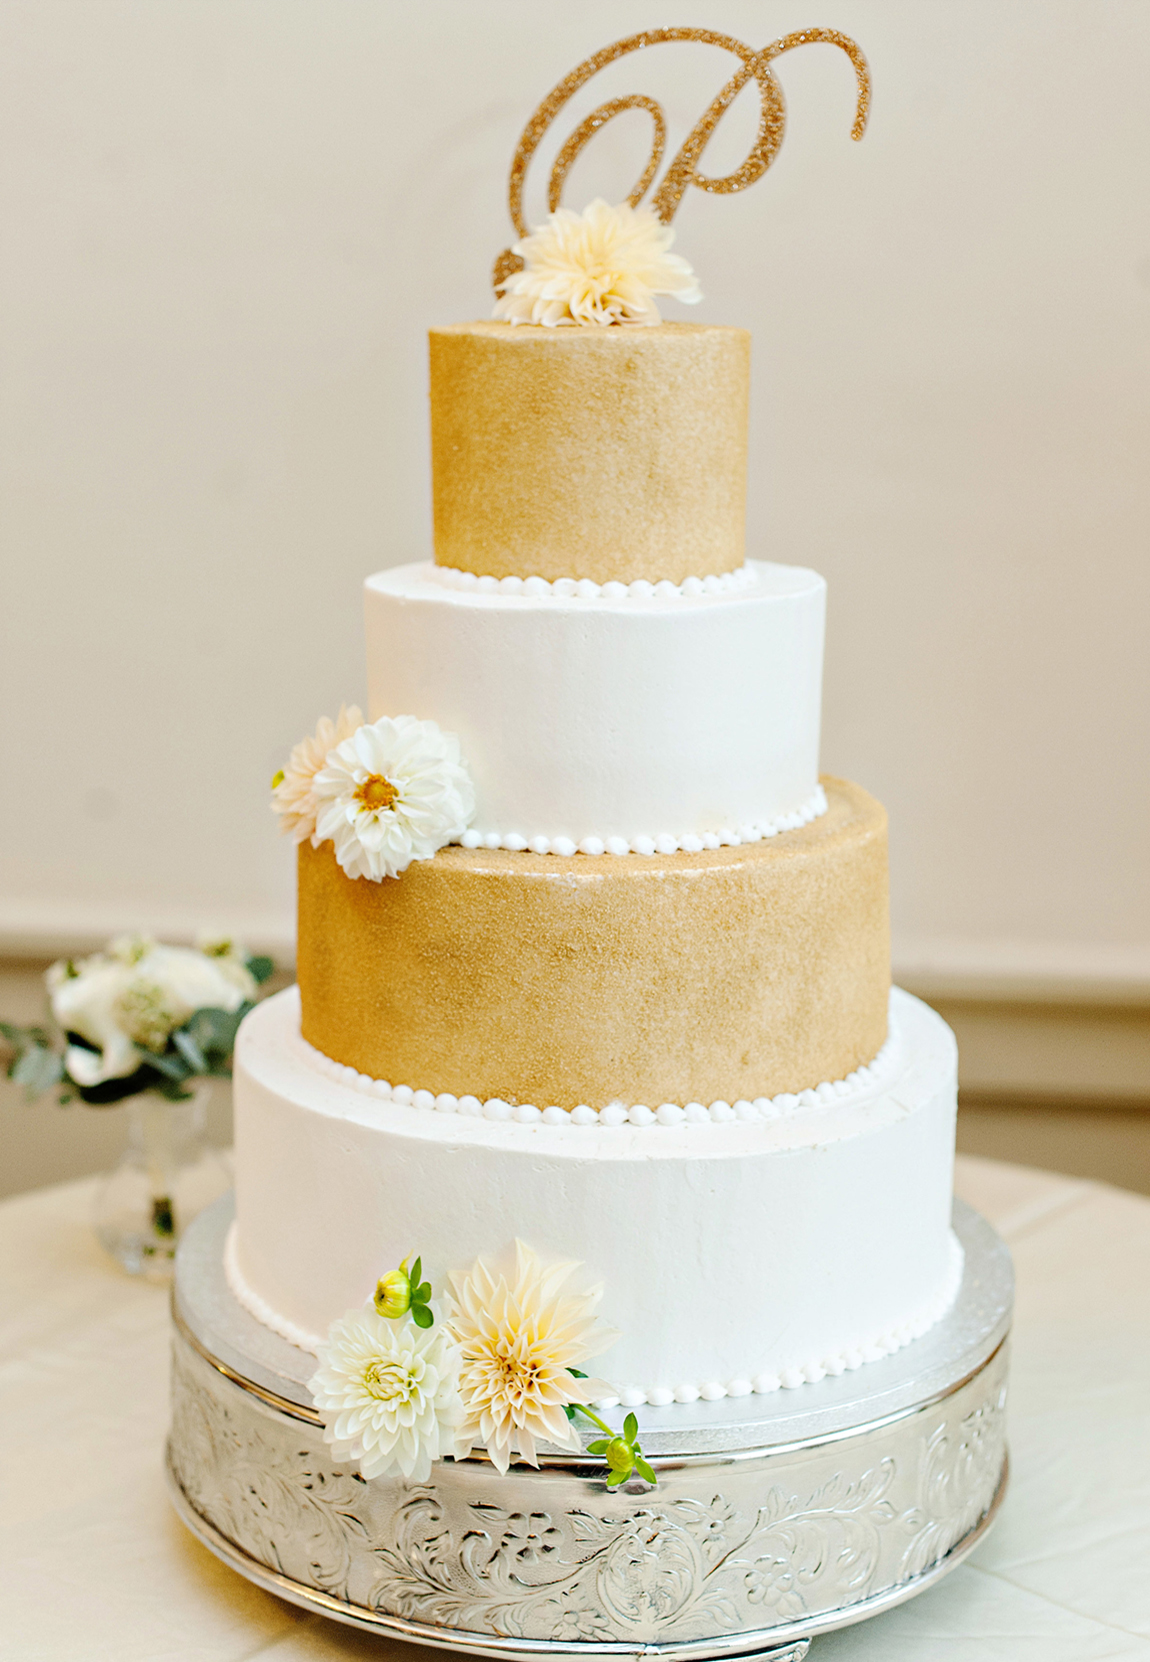 A pretty wedding cake with gold and white layers and soft autumn flowers.